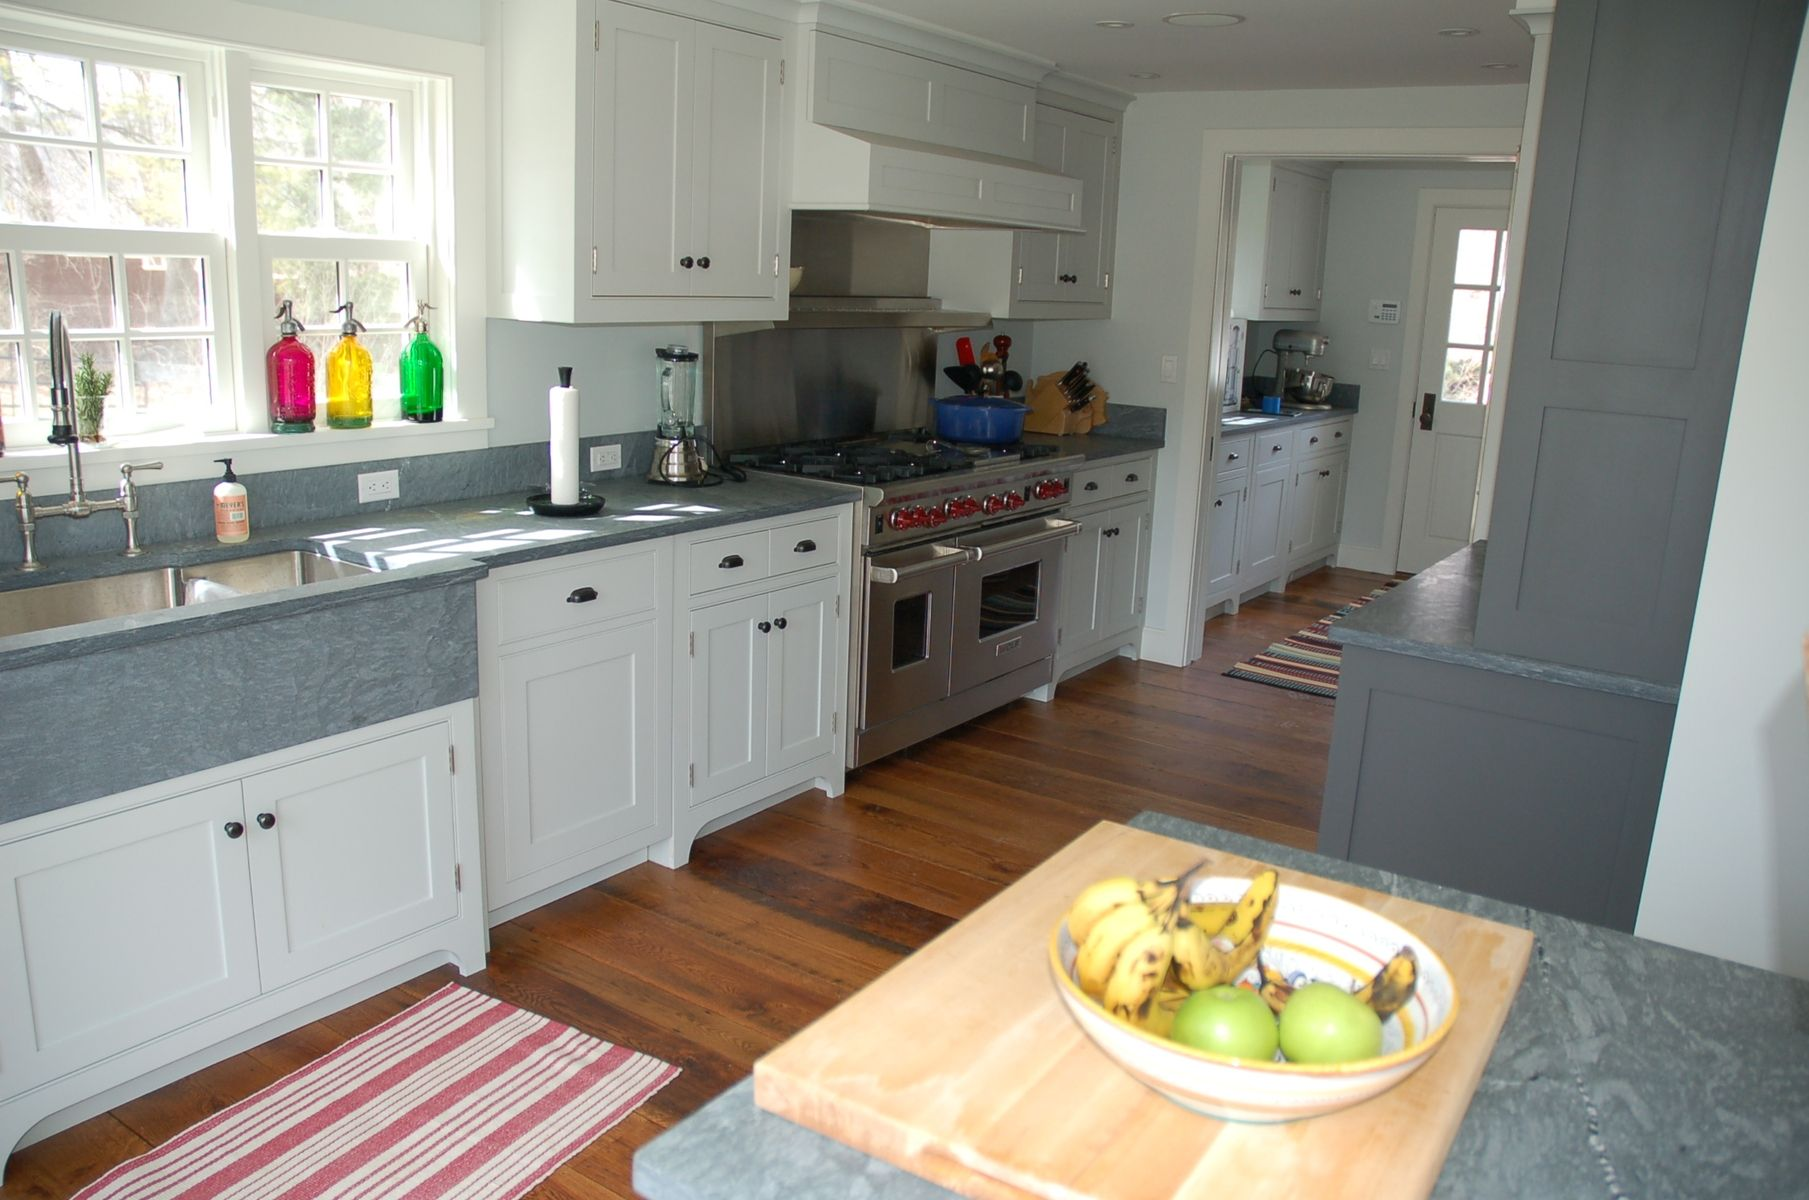 Nantucket kitchen hand made nantucket stlye kitchen by st for Nantucket style kitchen